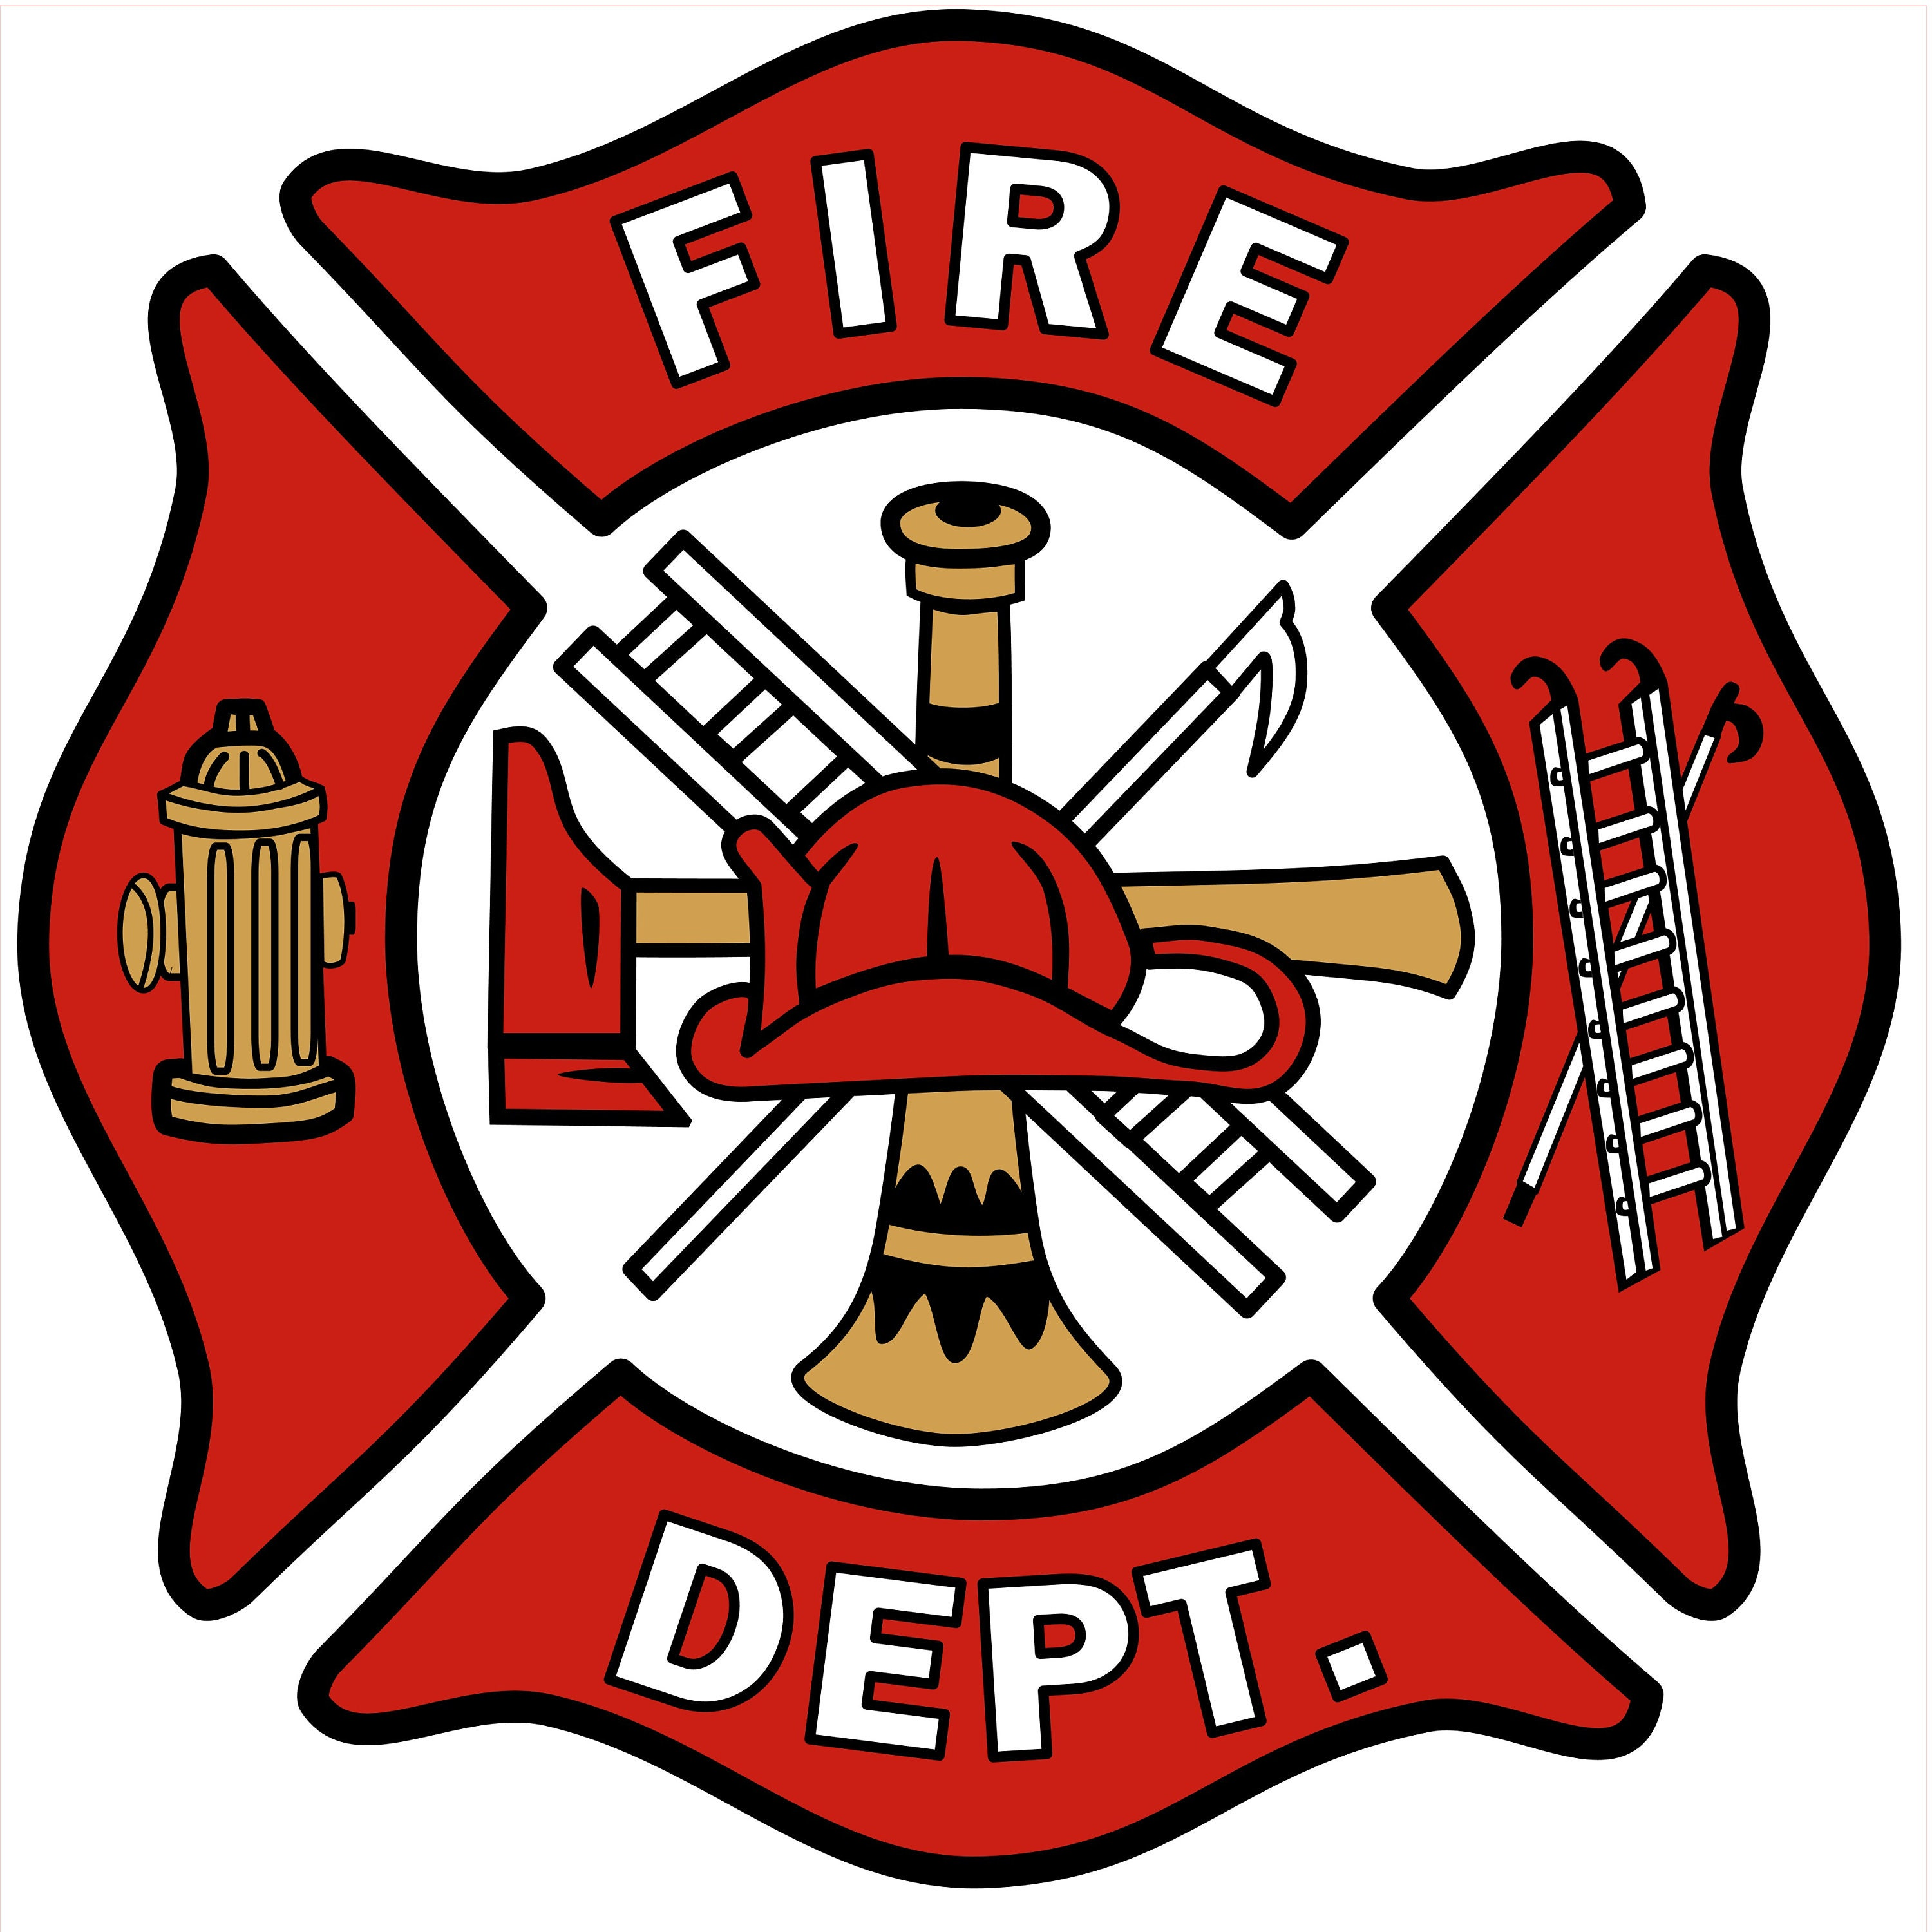 Fire department logo firefighters silhouette cut files jpeg this is a digital file buycottarizona Choice Image